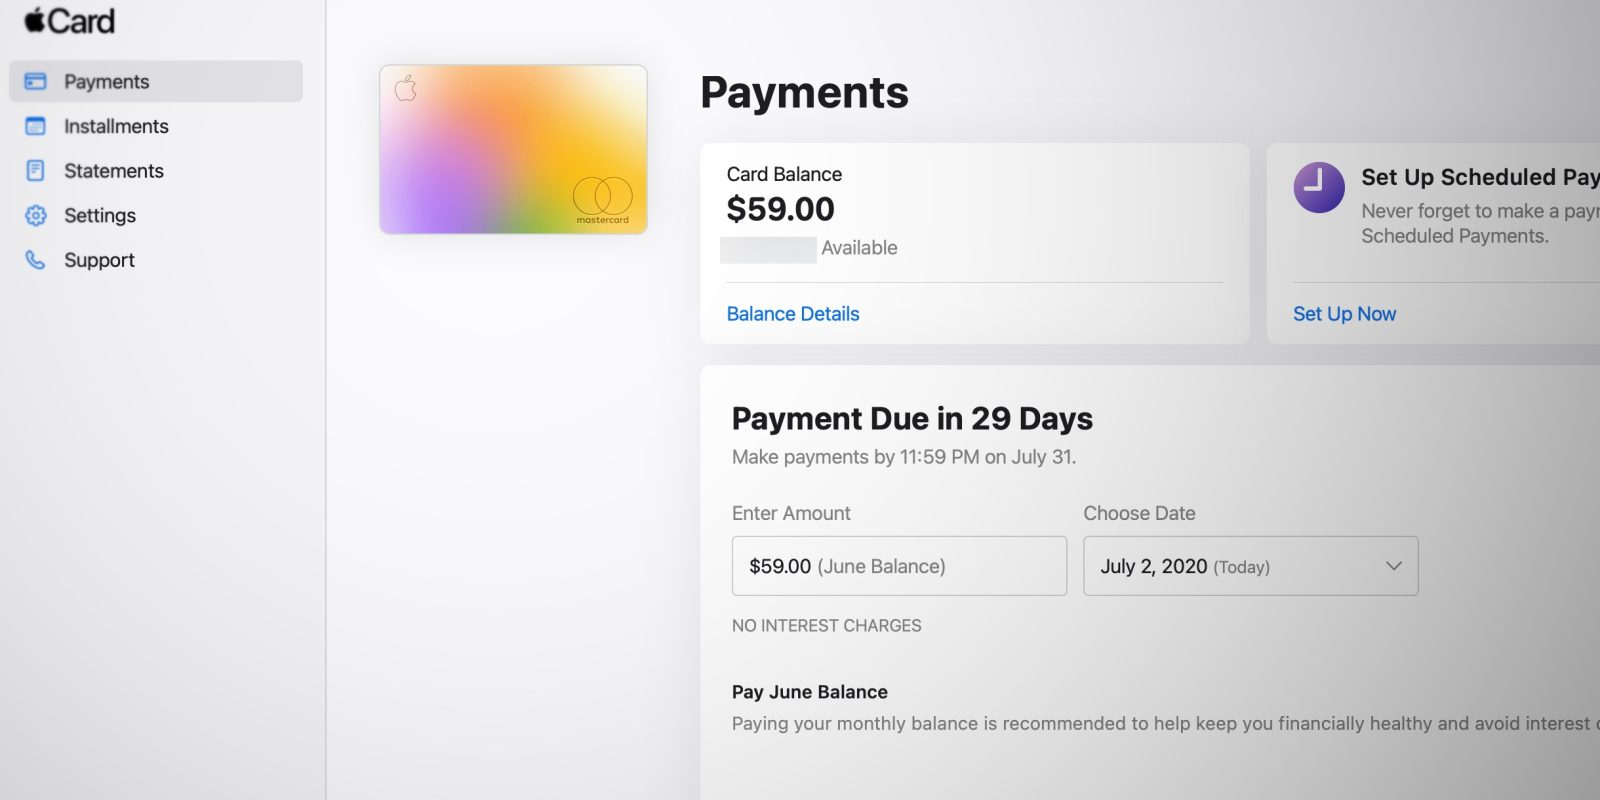 Apple launches web portal for Apple Card, pay your bill and view